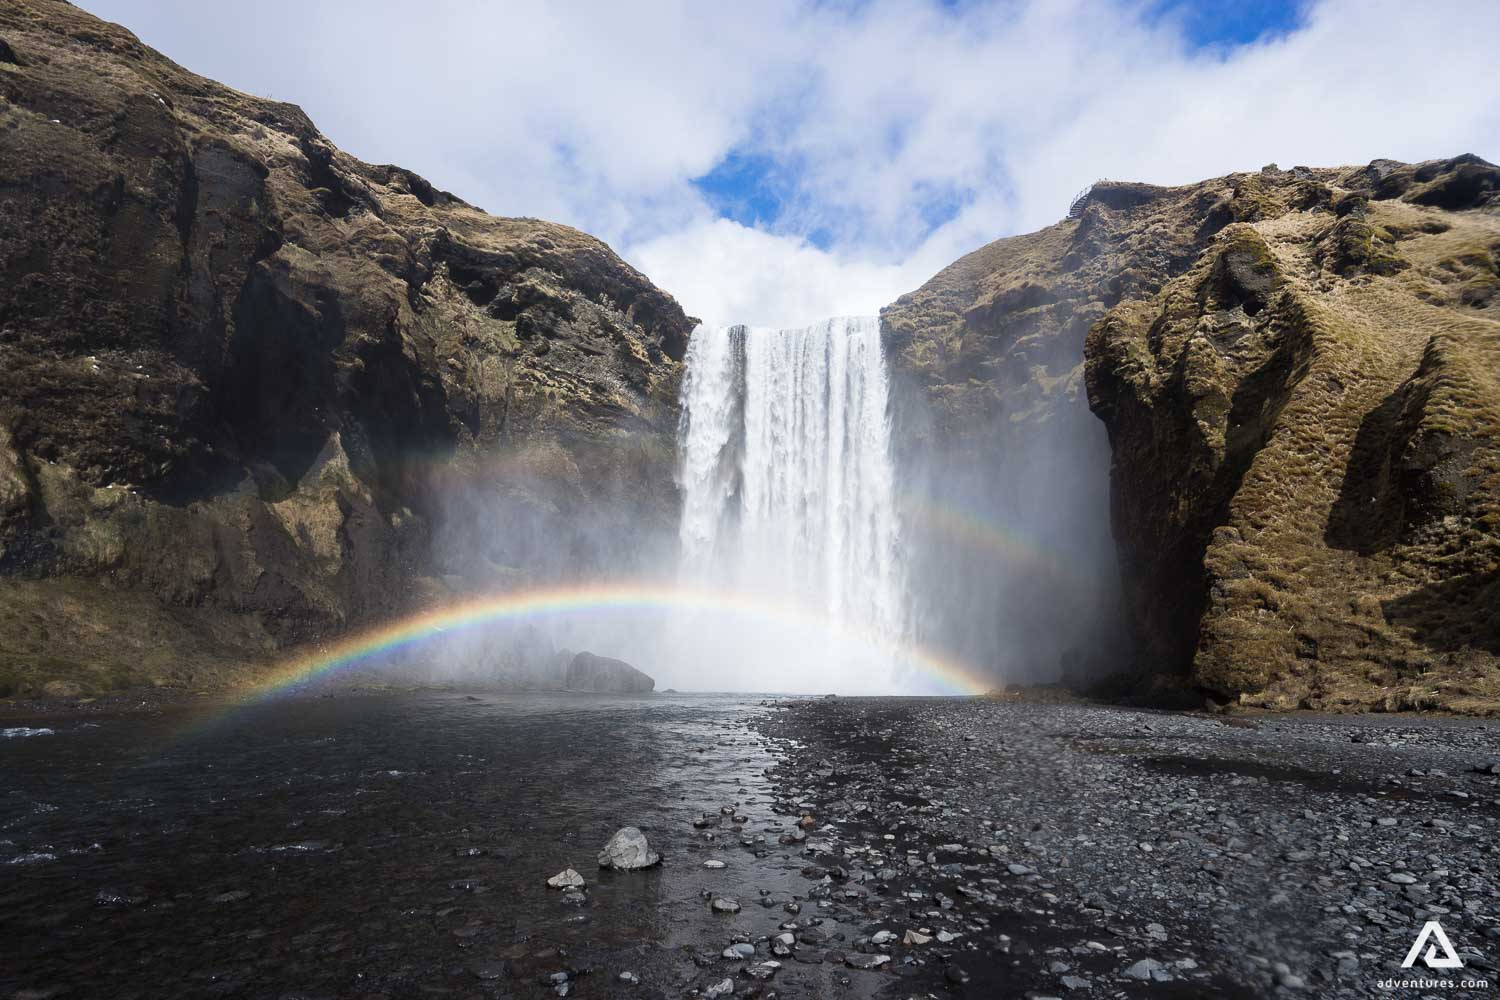 Skogafoss Waterfall on the South Coast of Iceland